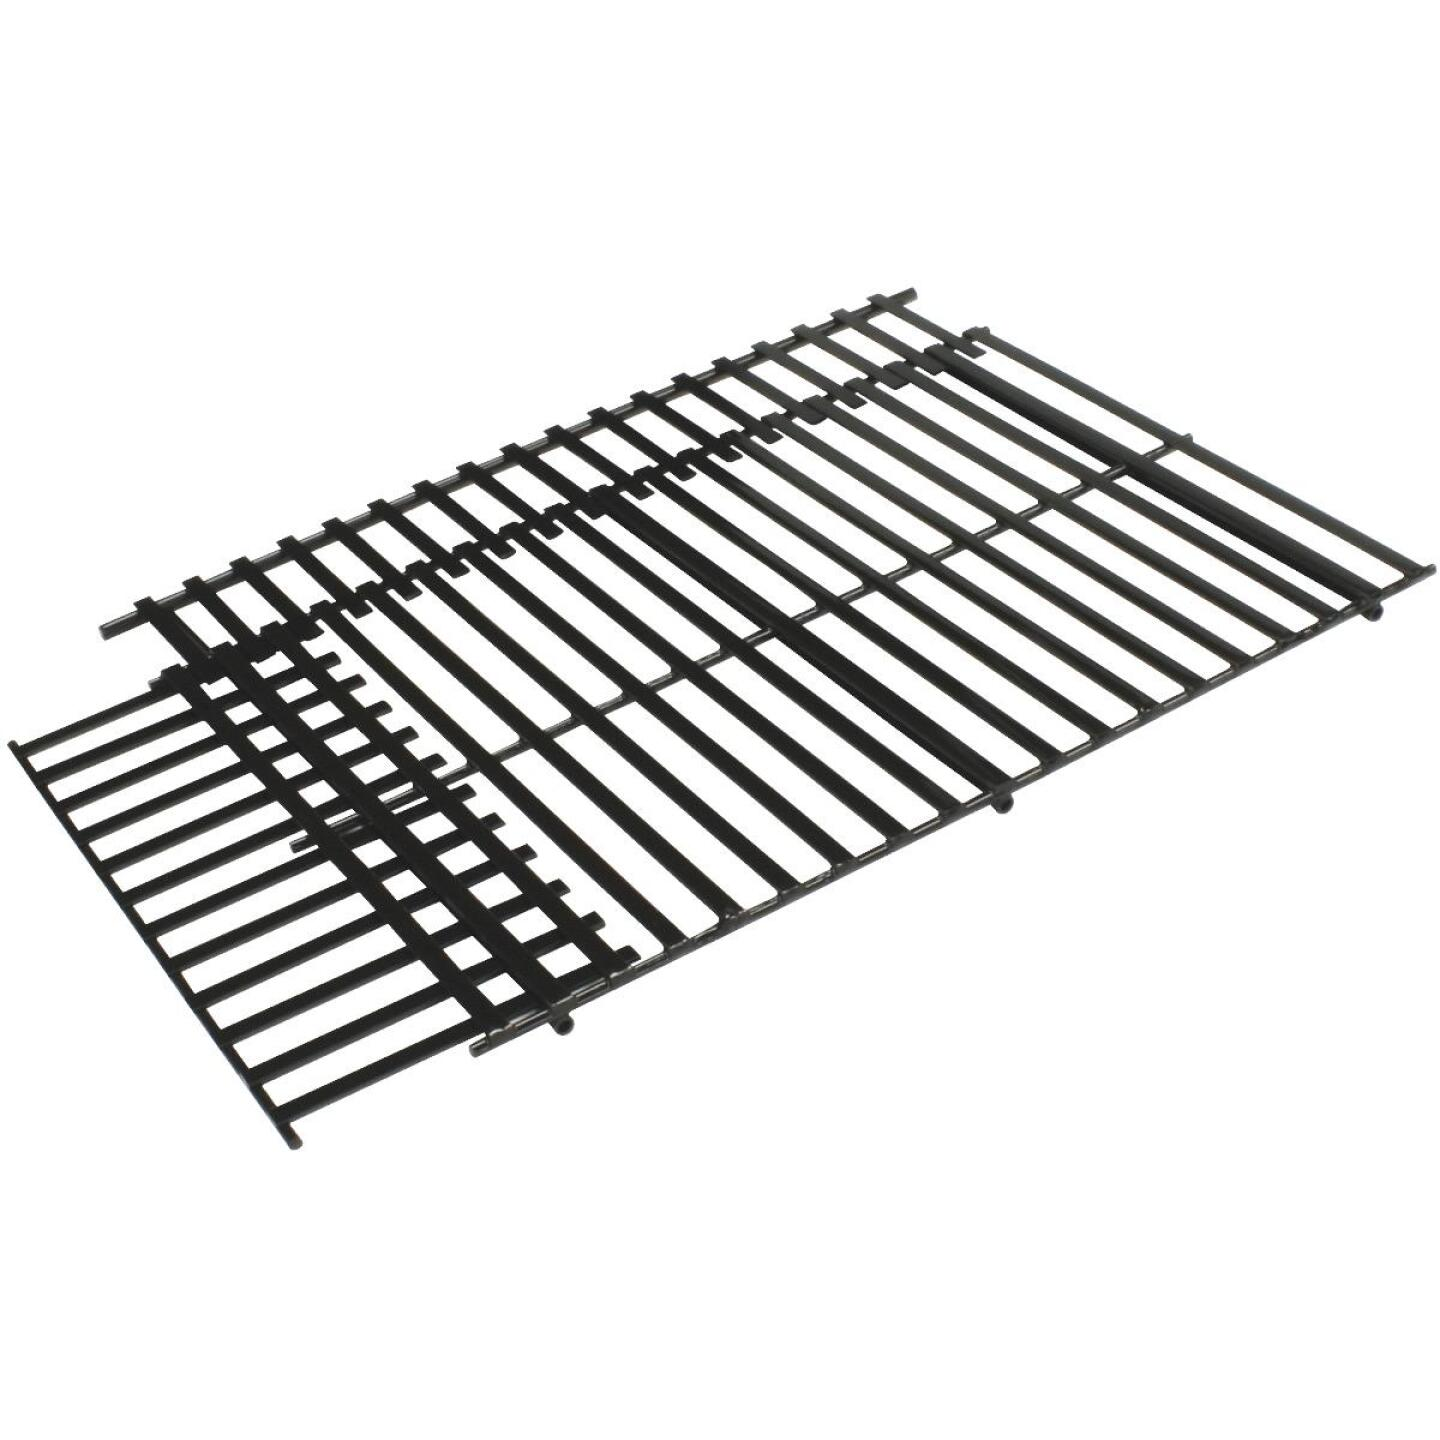 GrillPro 17 In. to 21 In. W. x 11-3/4 In. to 14-1/2 In. D. Steel Universal Adjustable Grill Grate Image 1